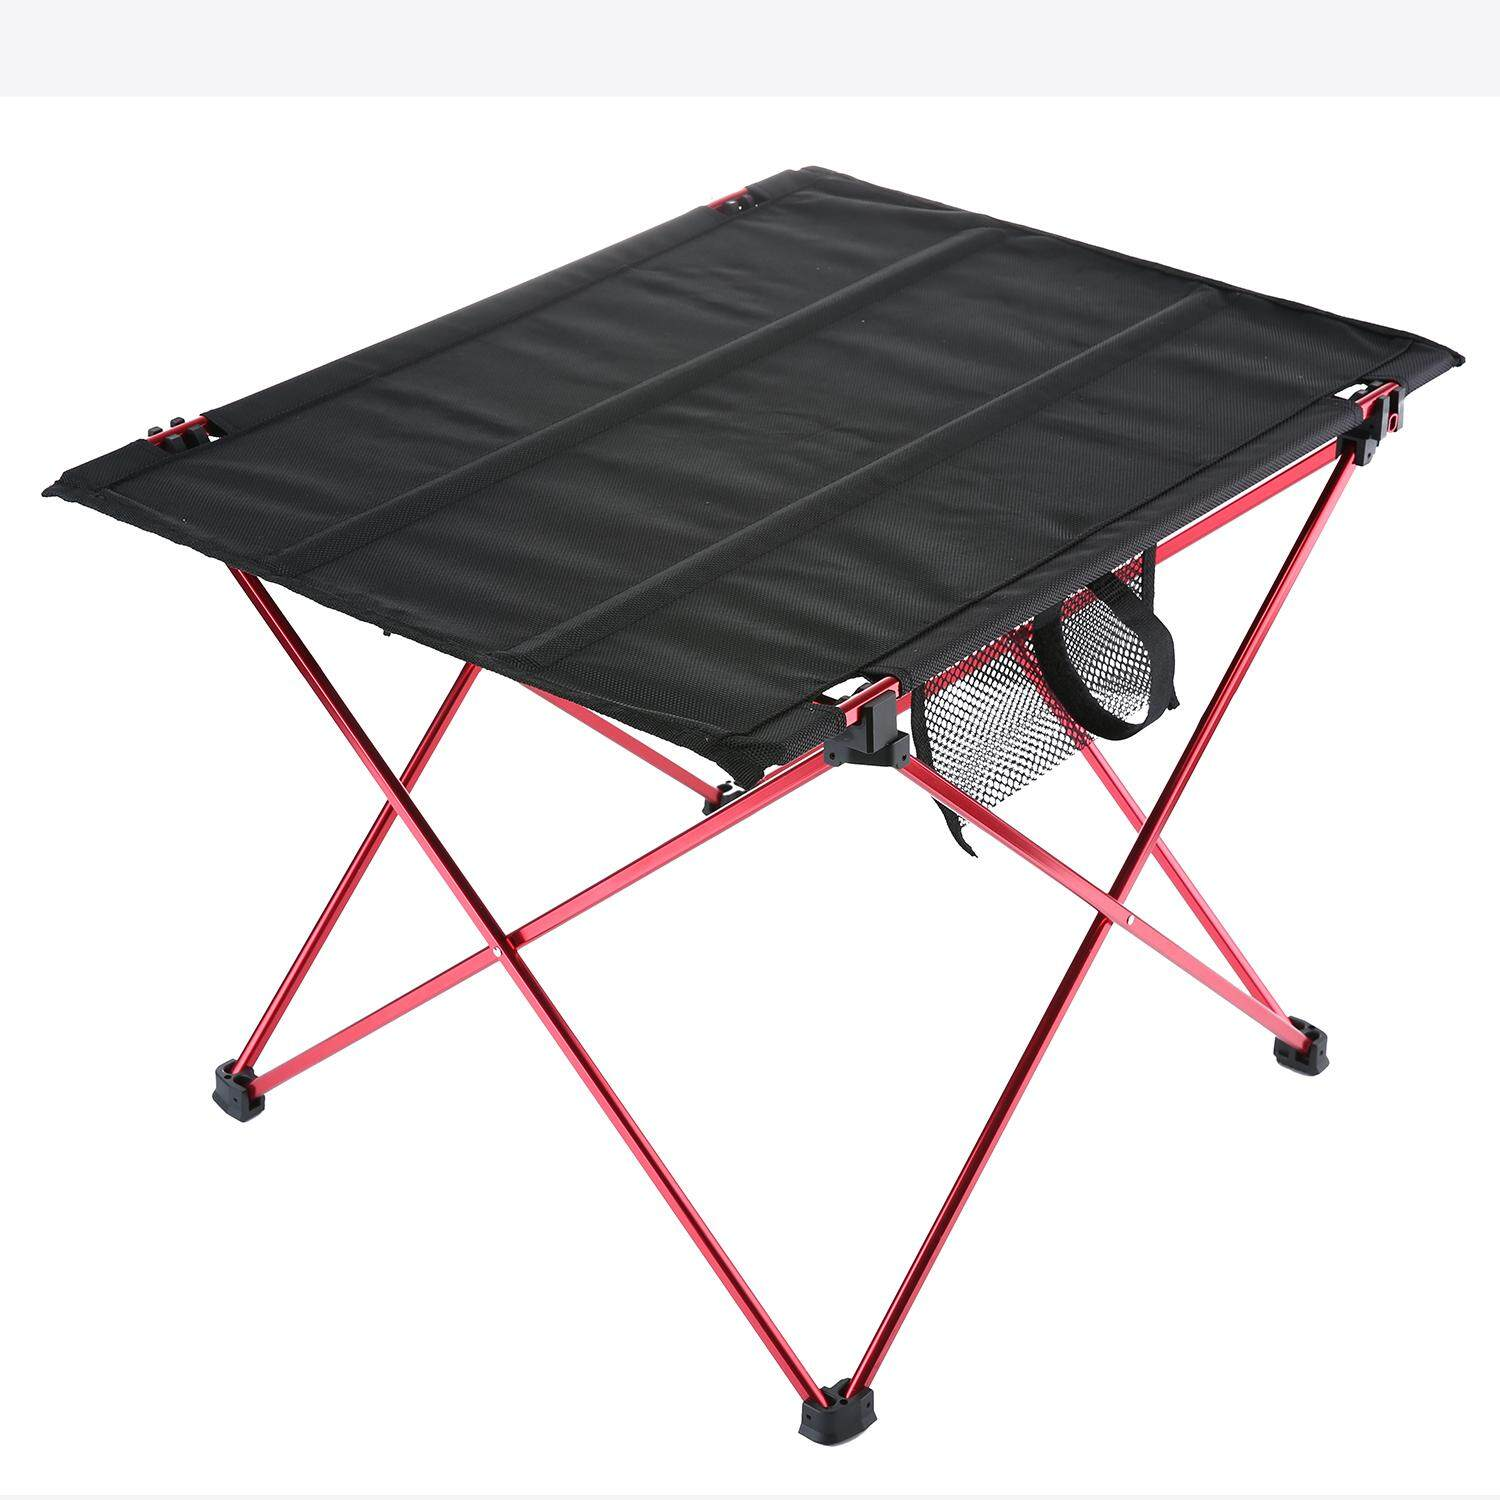 jinma Folding Camping Table Ultralight Portable Hiking Picnic Mountaineering Table with Carrying Bag,Red